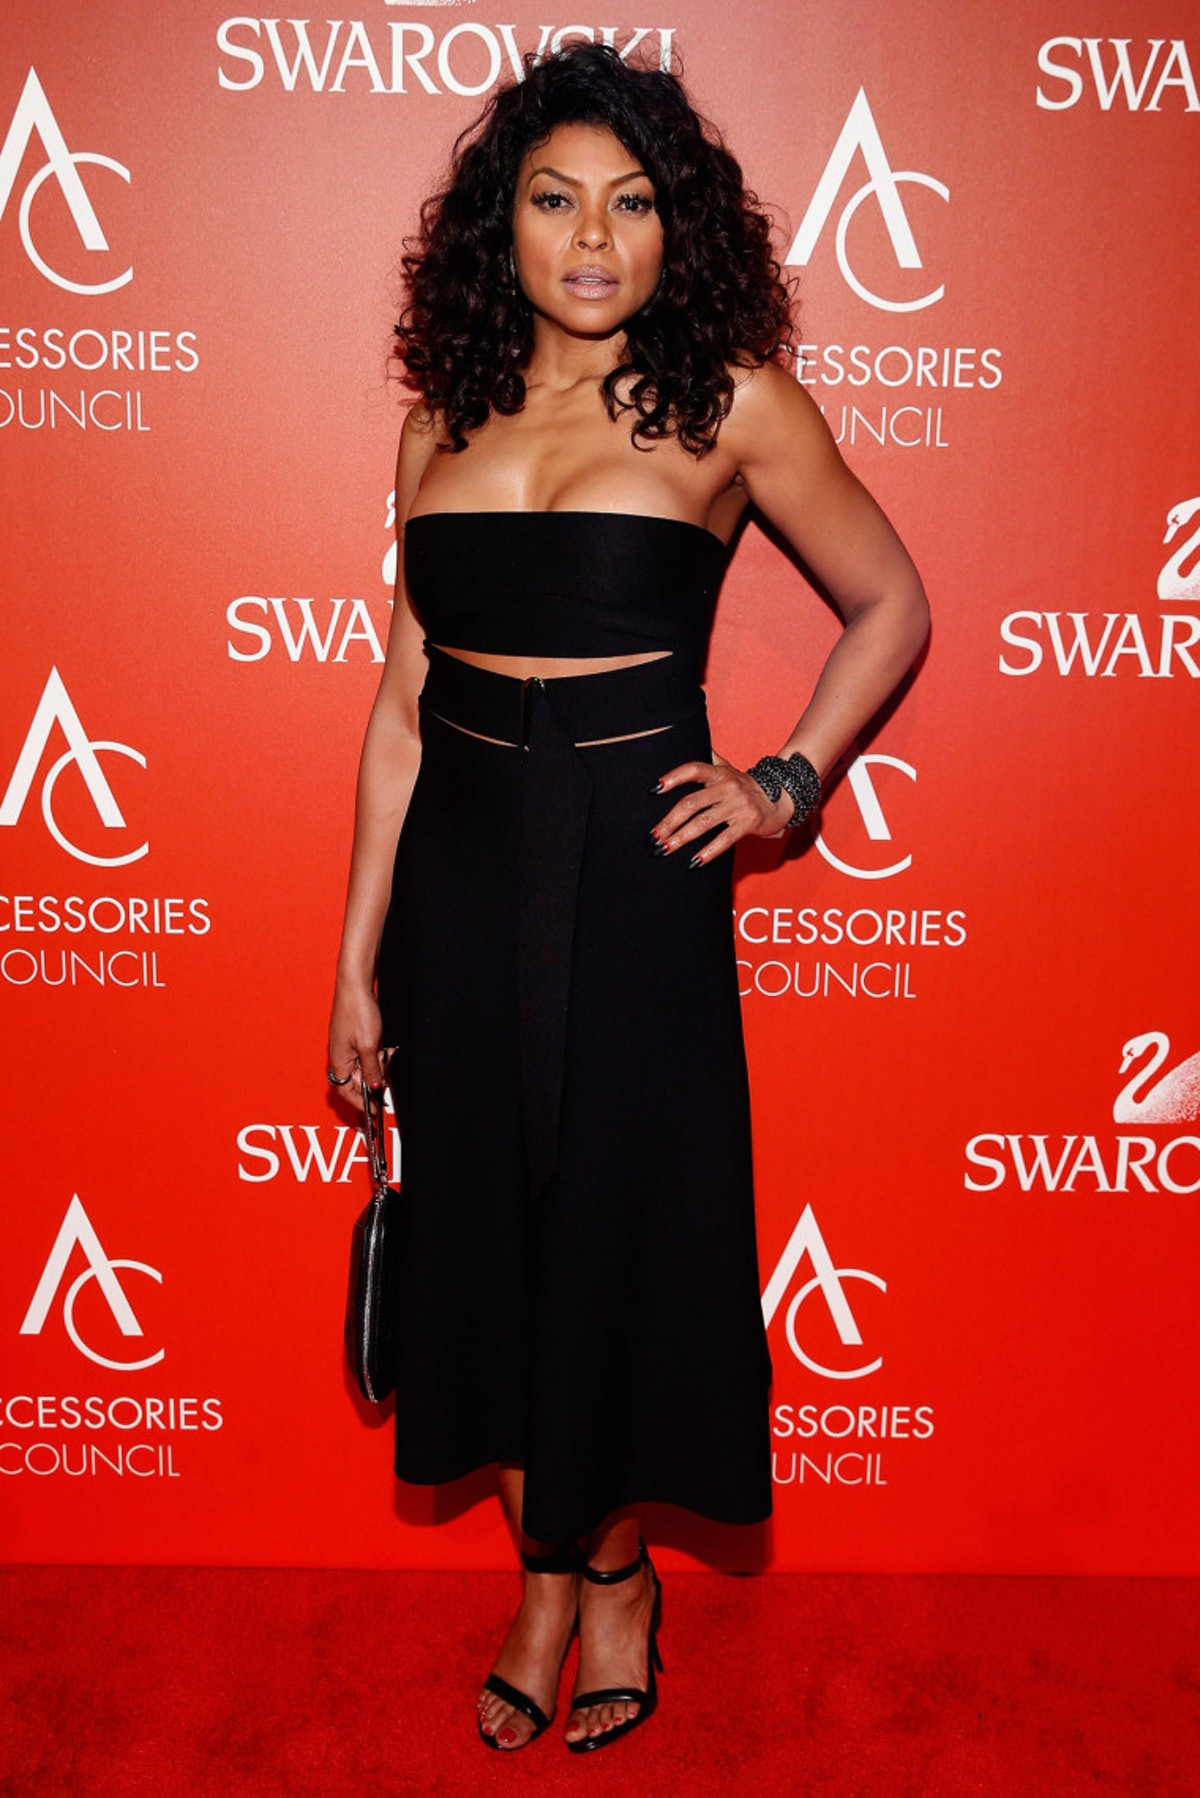 Taraji-Henson-Attends-The-19th-Annual-Accessories-Council-ACE-Awards-2-760x1139